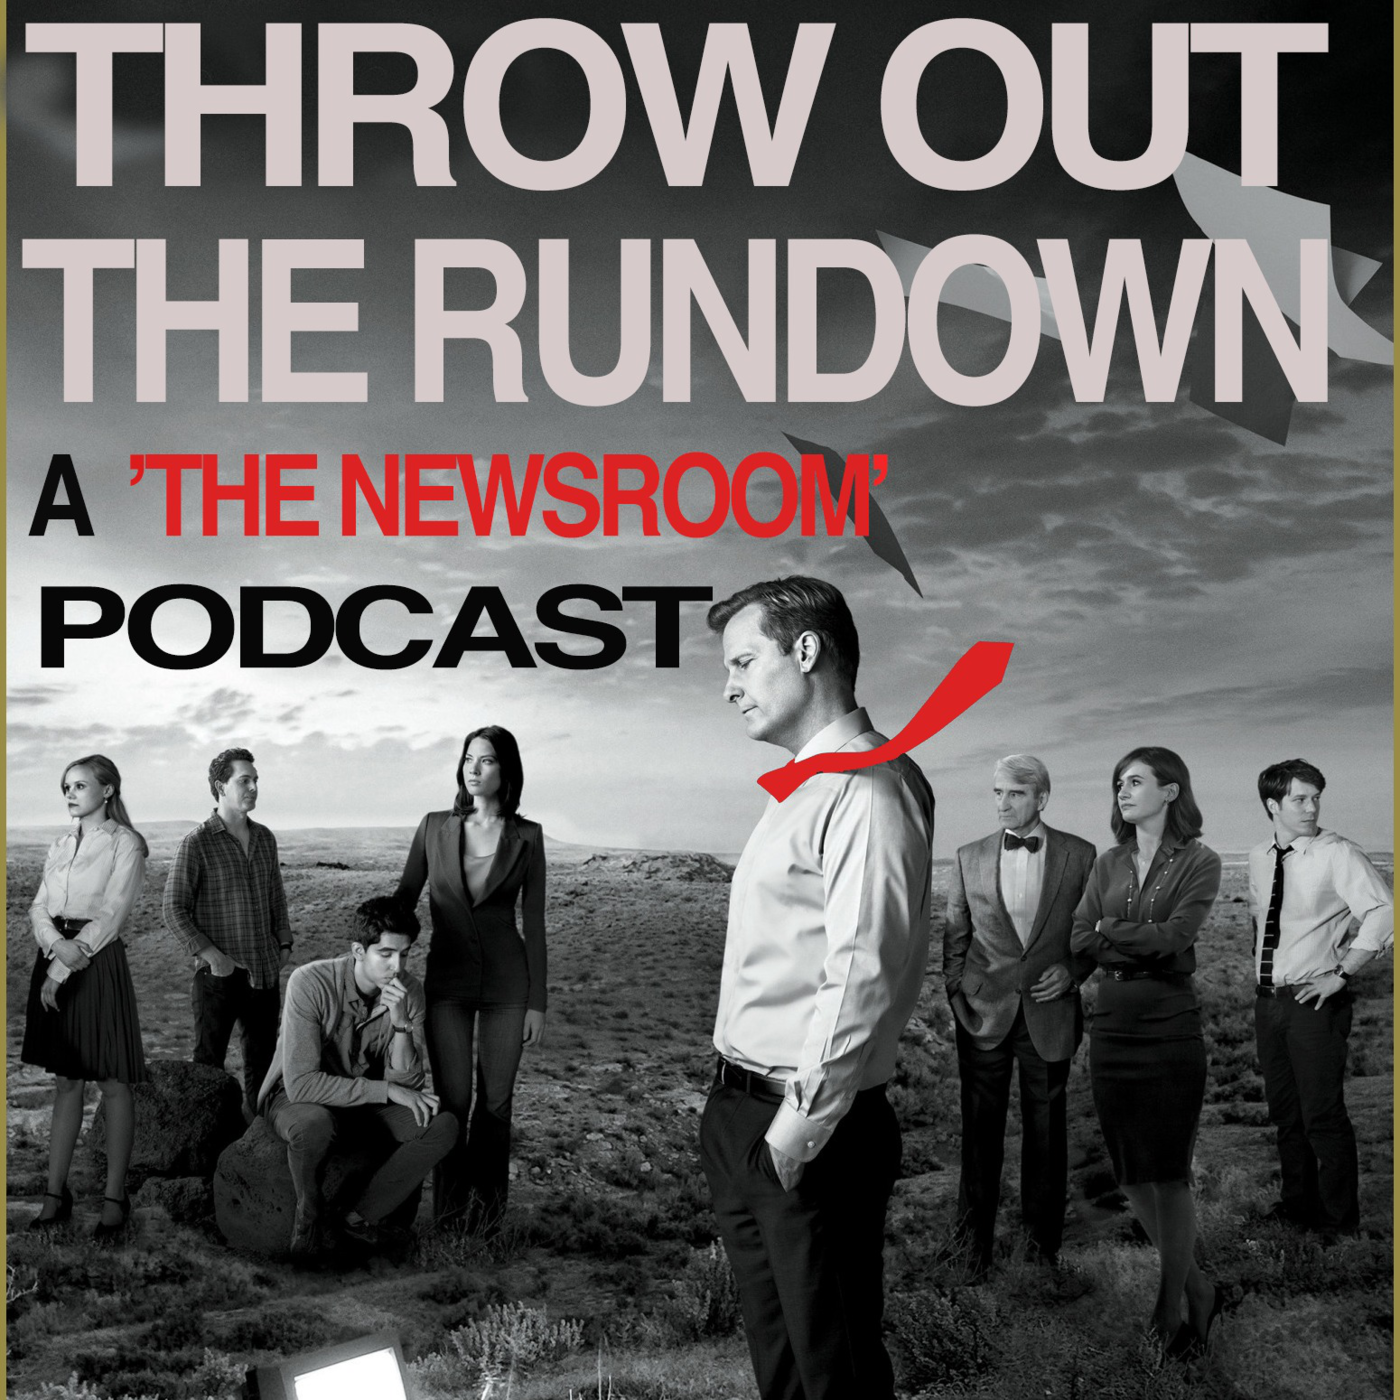 Throw Out the Rundown: 'The Newsroom' Podcast